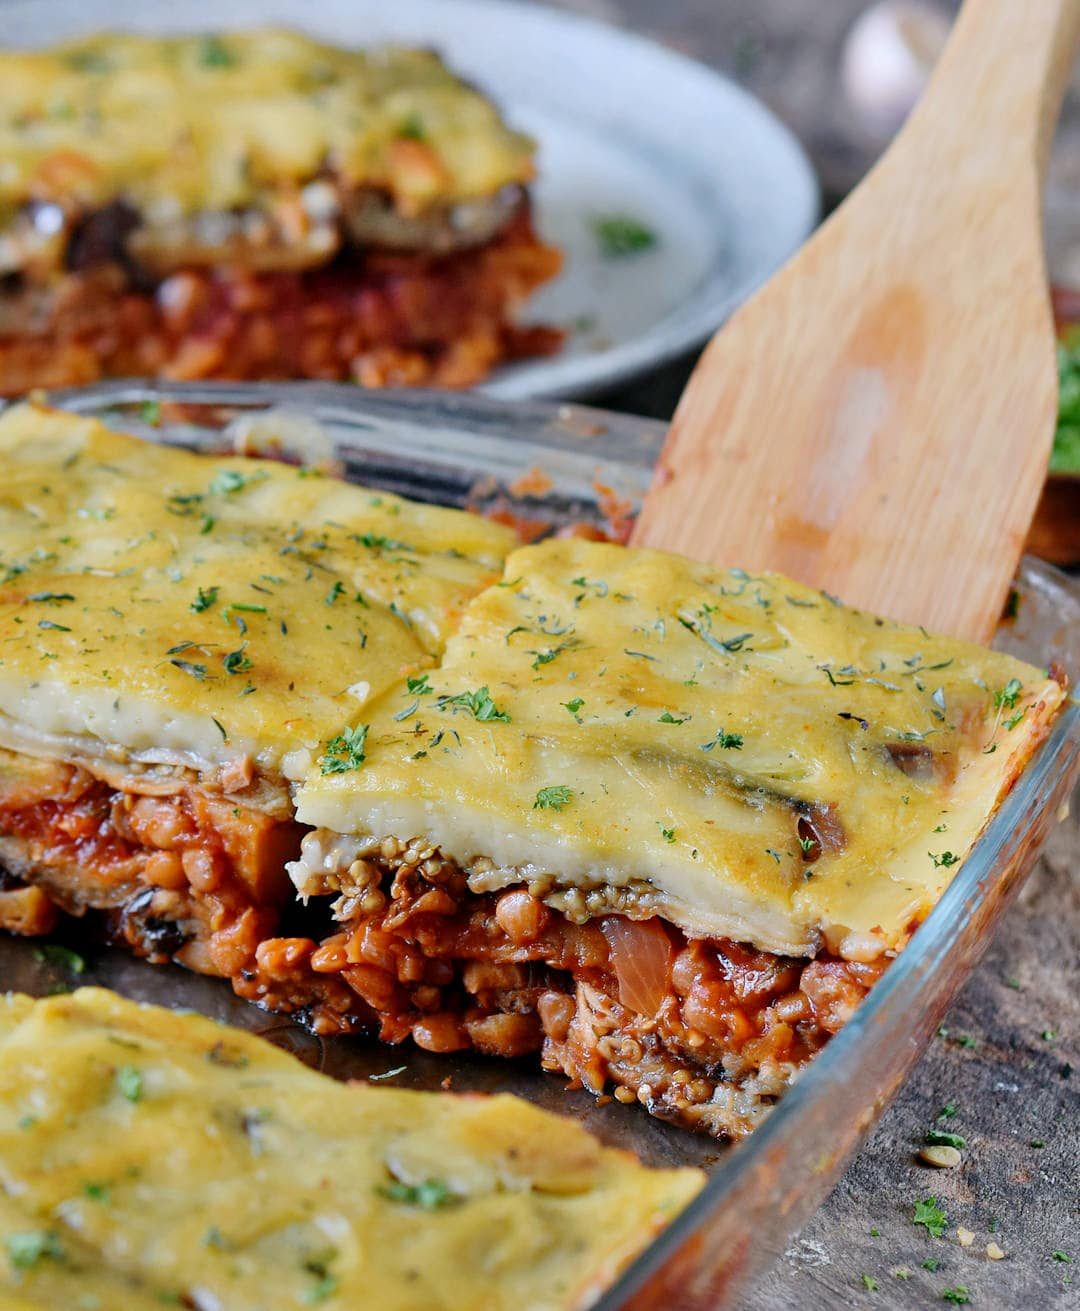 close-up of vegan moussaka and wooden spatula in a glass baking dish